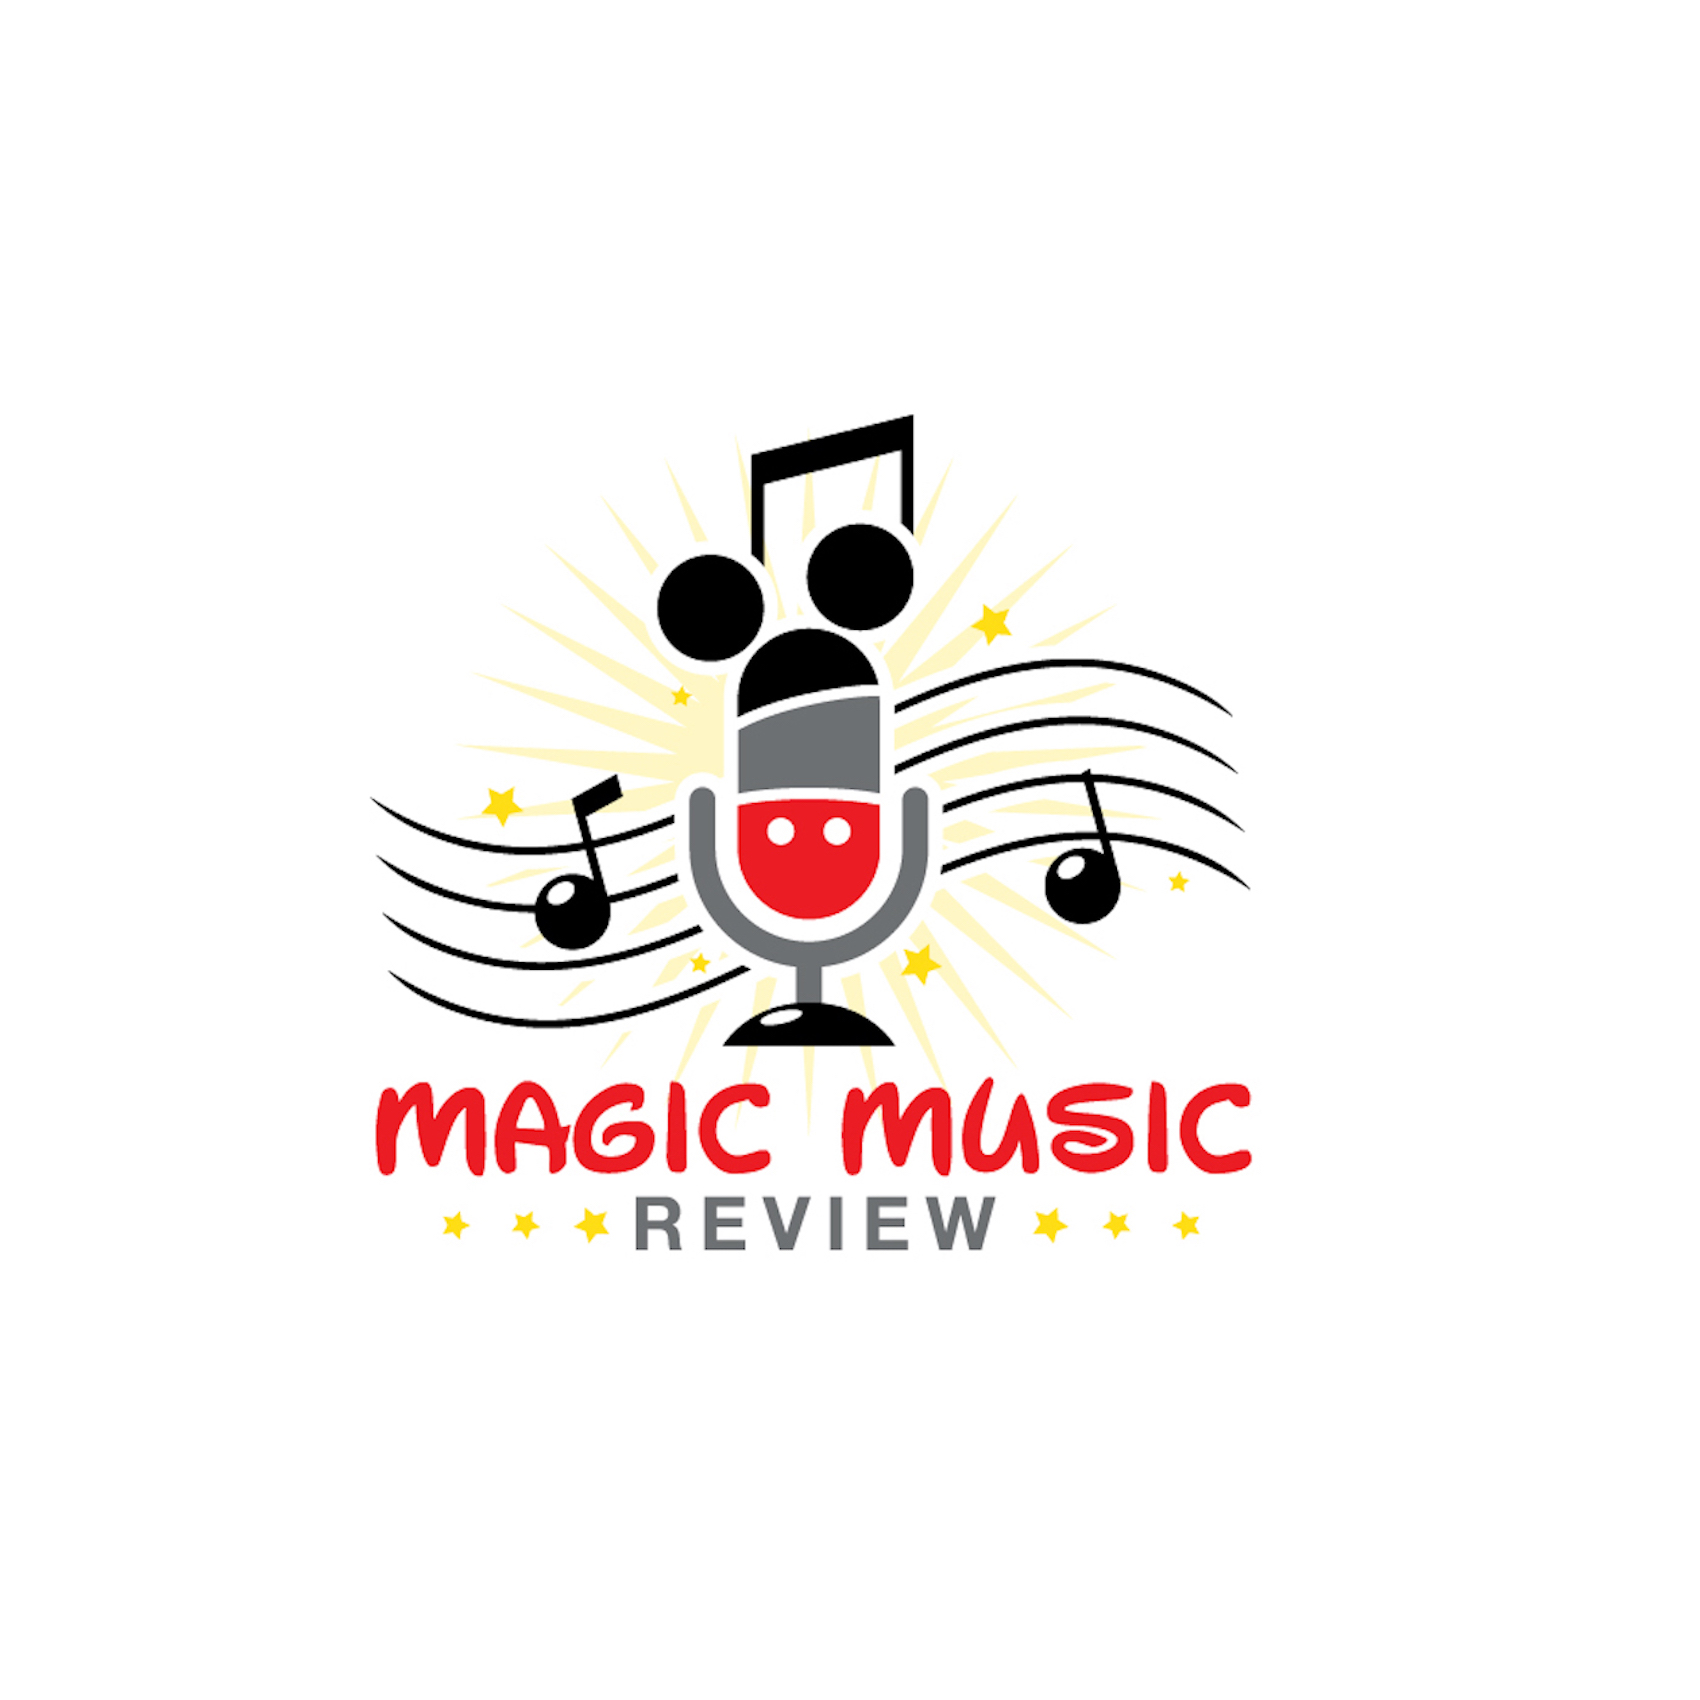 magic music review. Black Bedroom Furniture Sets. Home Design Ideas